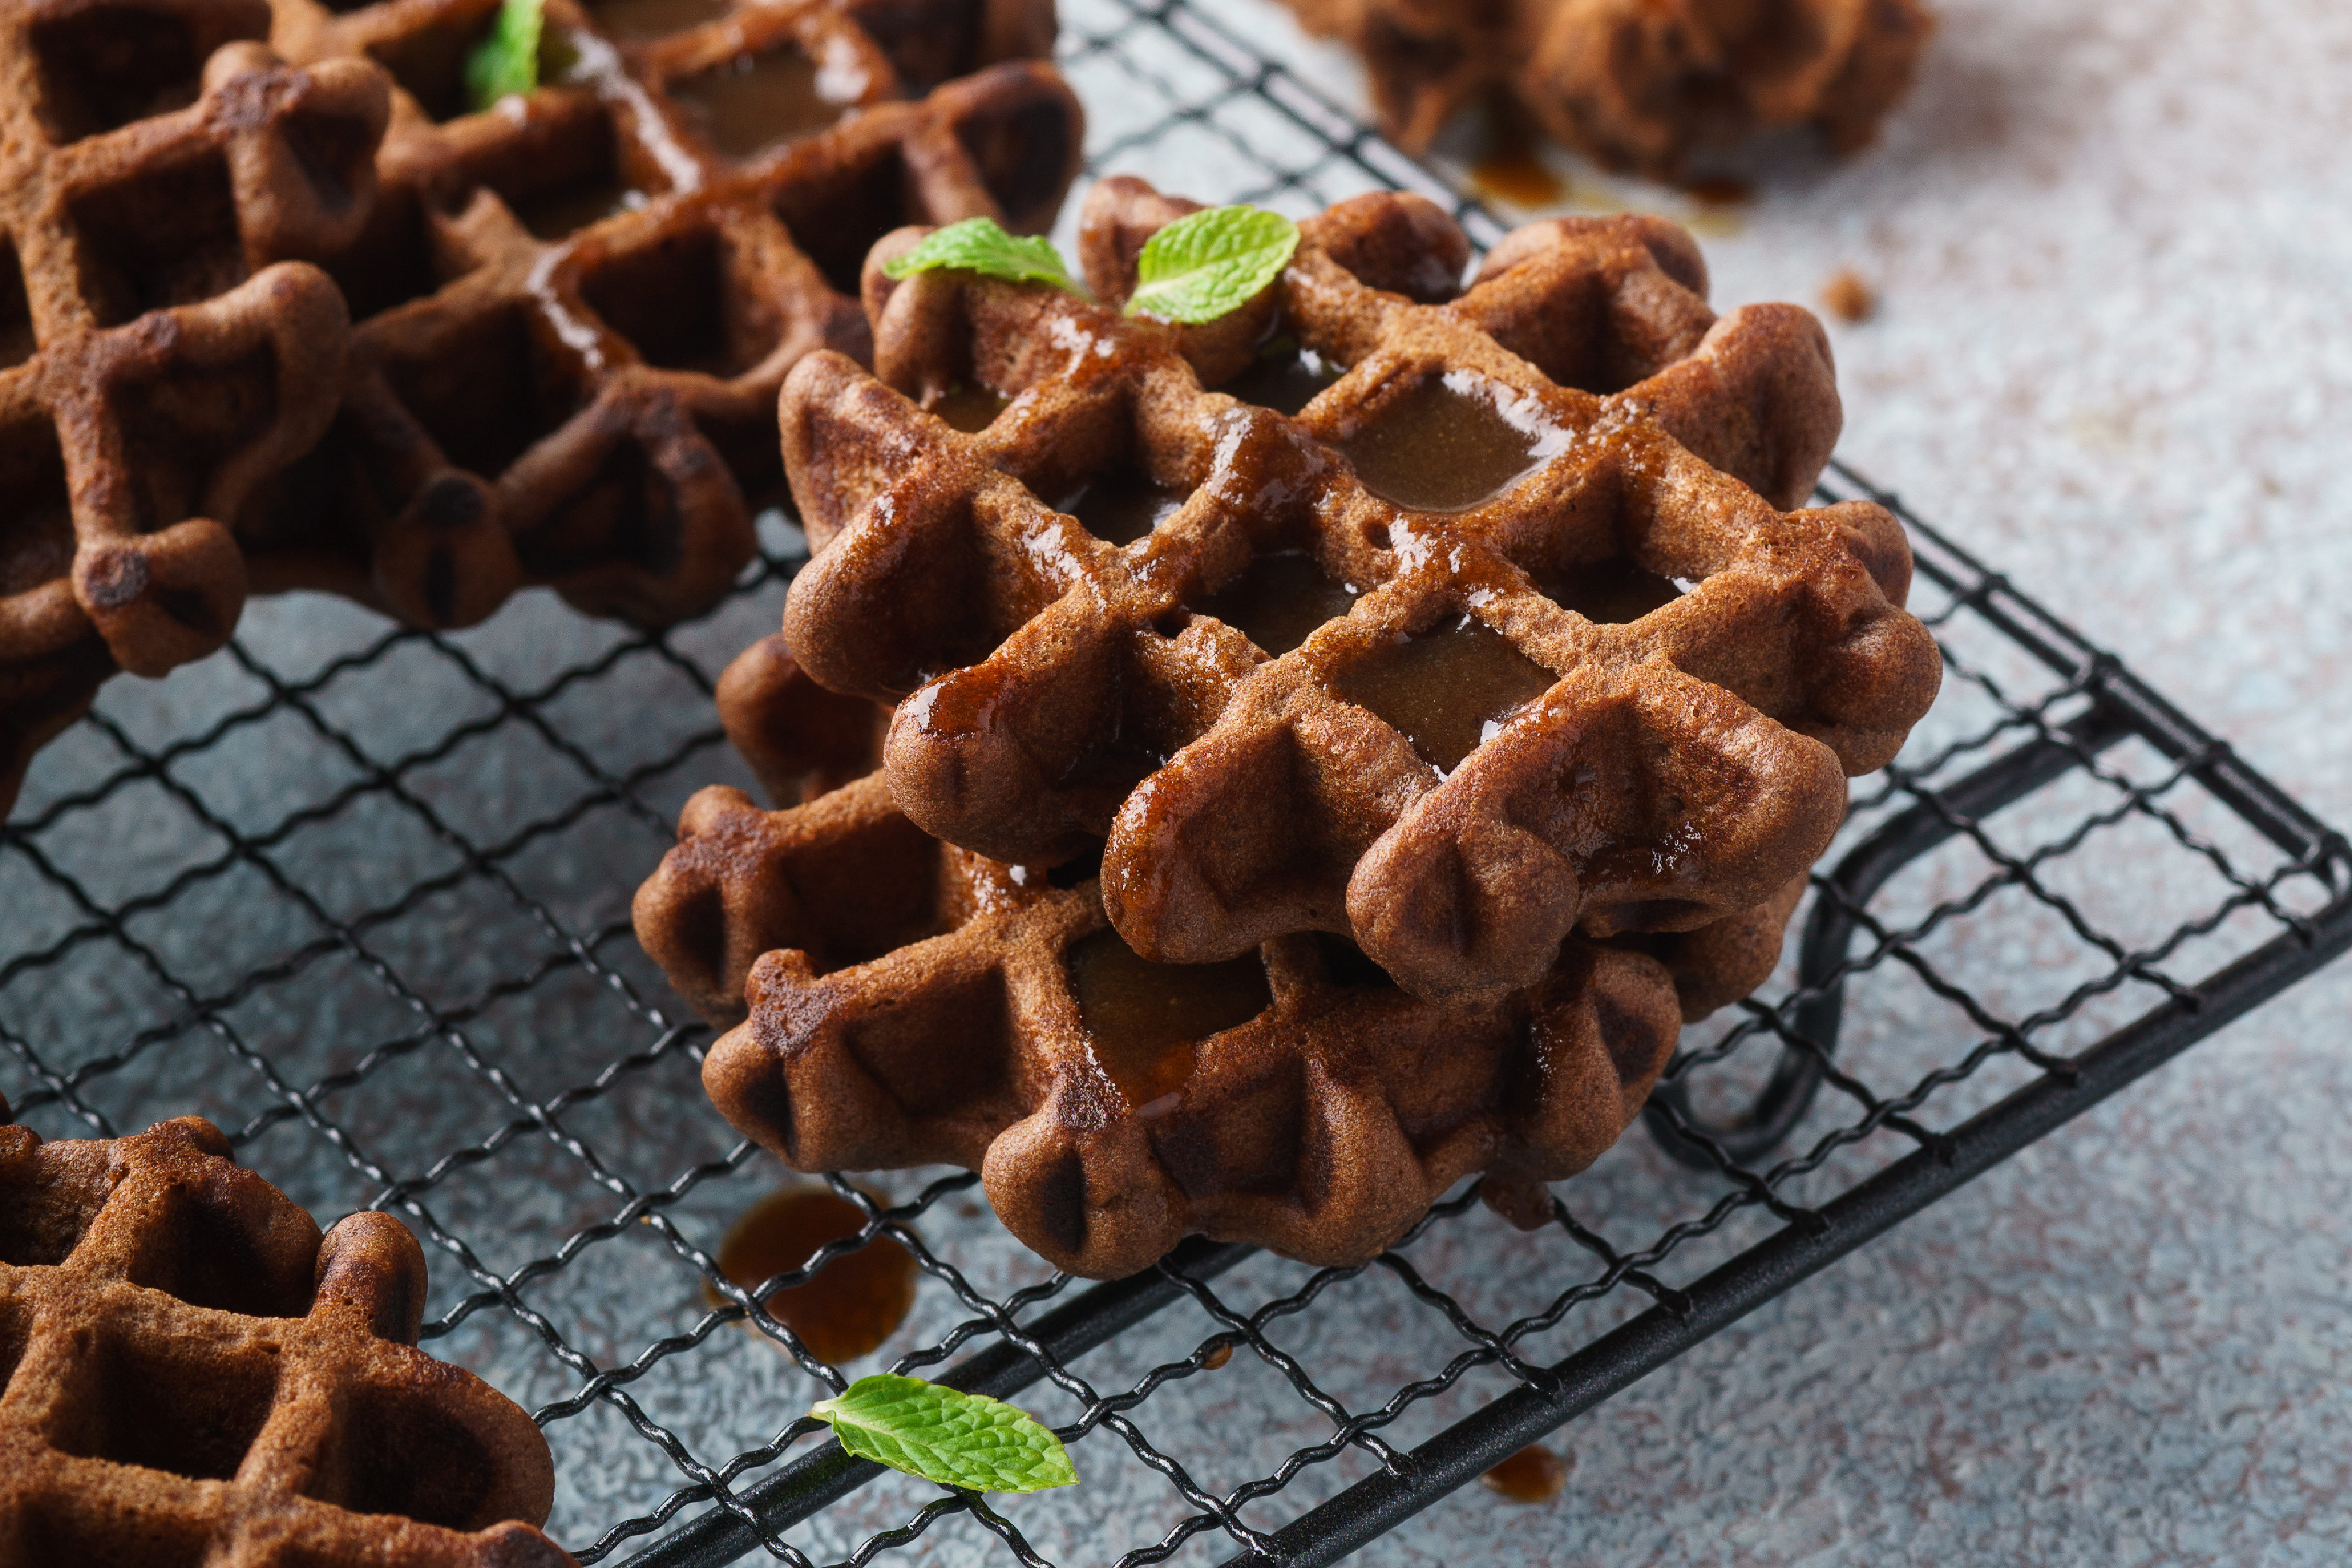 Chocolate waffles with caramel syrup and mint for breakfast.